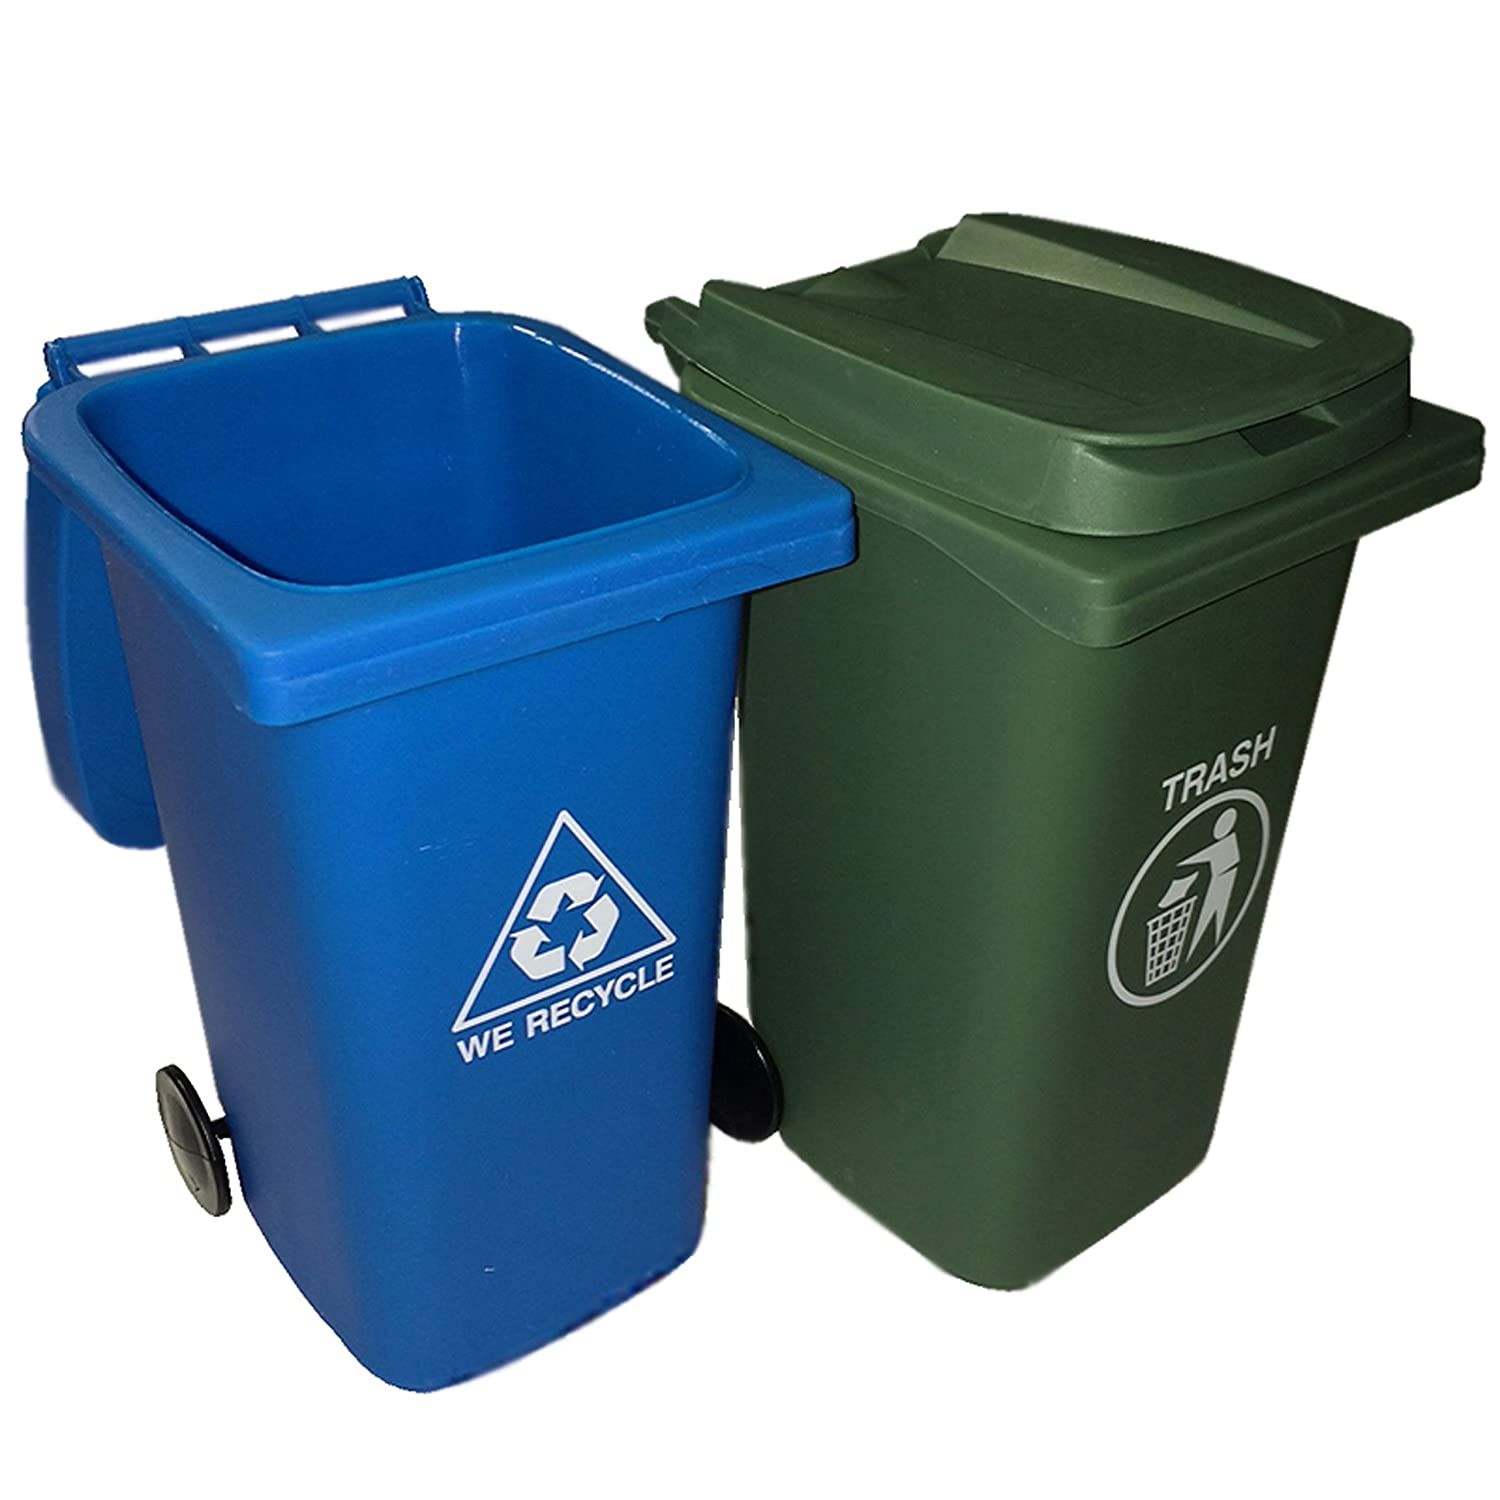 Amazon com   BigMouth Inc The Mini Curbside Trash and Recycle Can Set    Kitchen Tool Sets   Office Products. Amazon com   BigMouth Inc The Mini Curbside Trash and Recycle Can